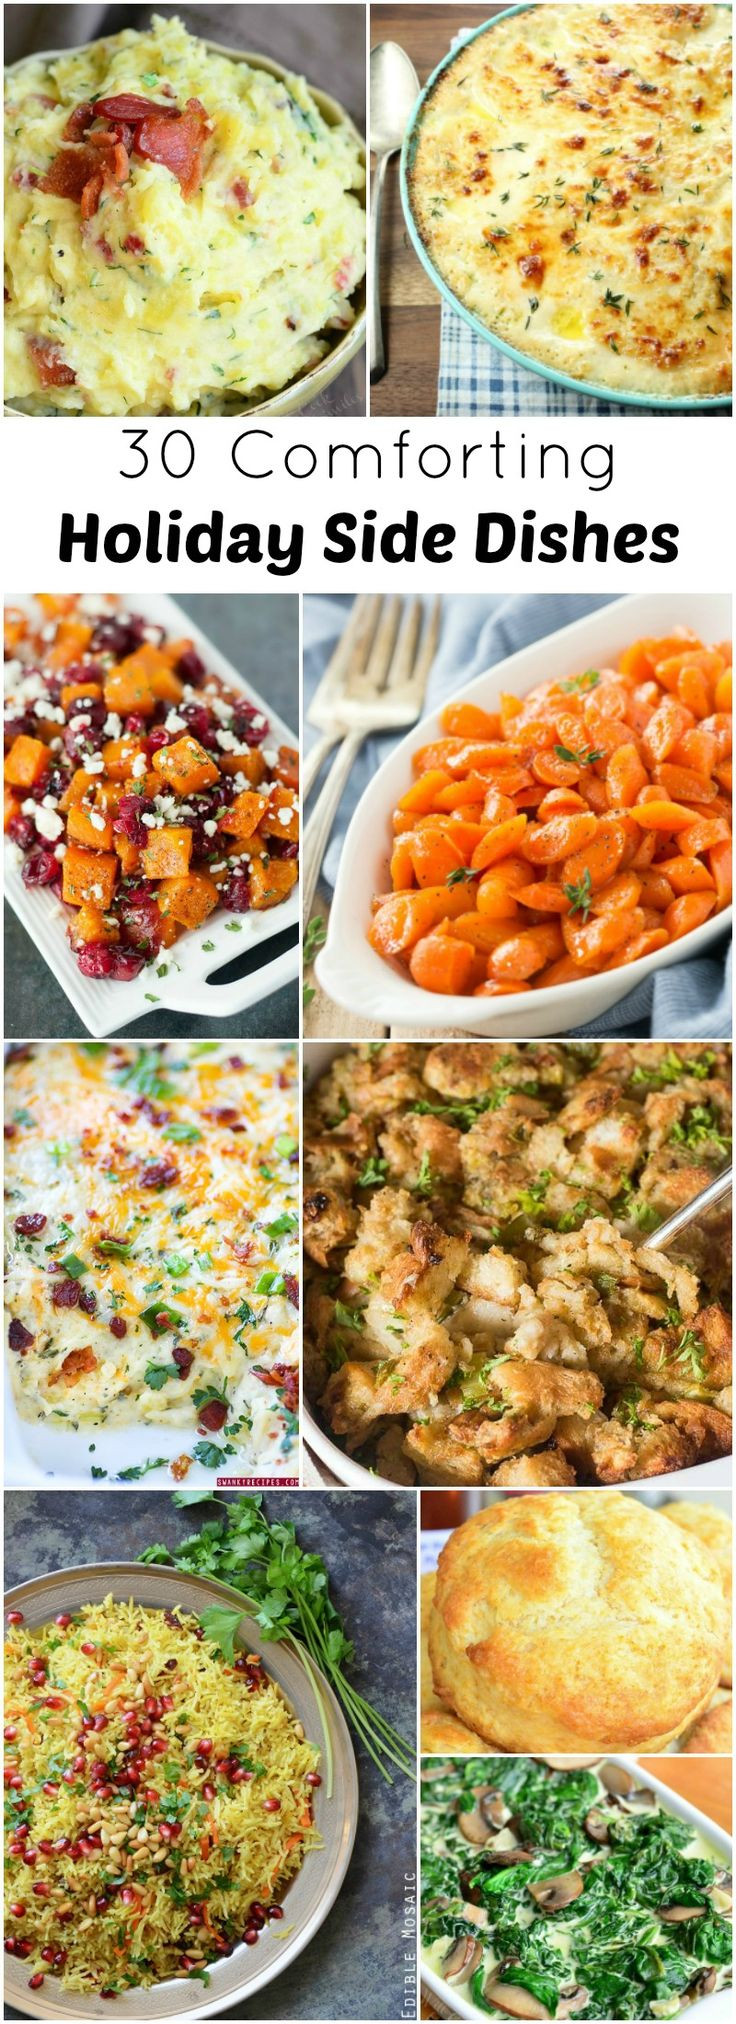 Ideas For Thanksgiving Dinner Side Dishes  17 Best ideas about Holiday Side Dishes on Pinterest